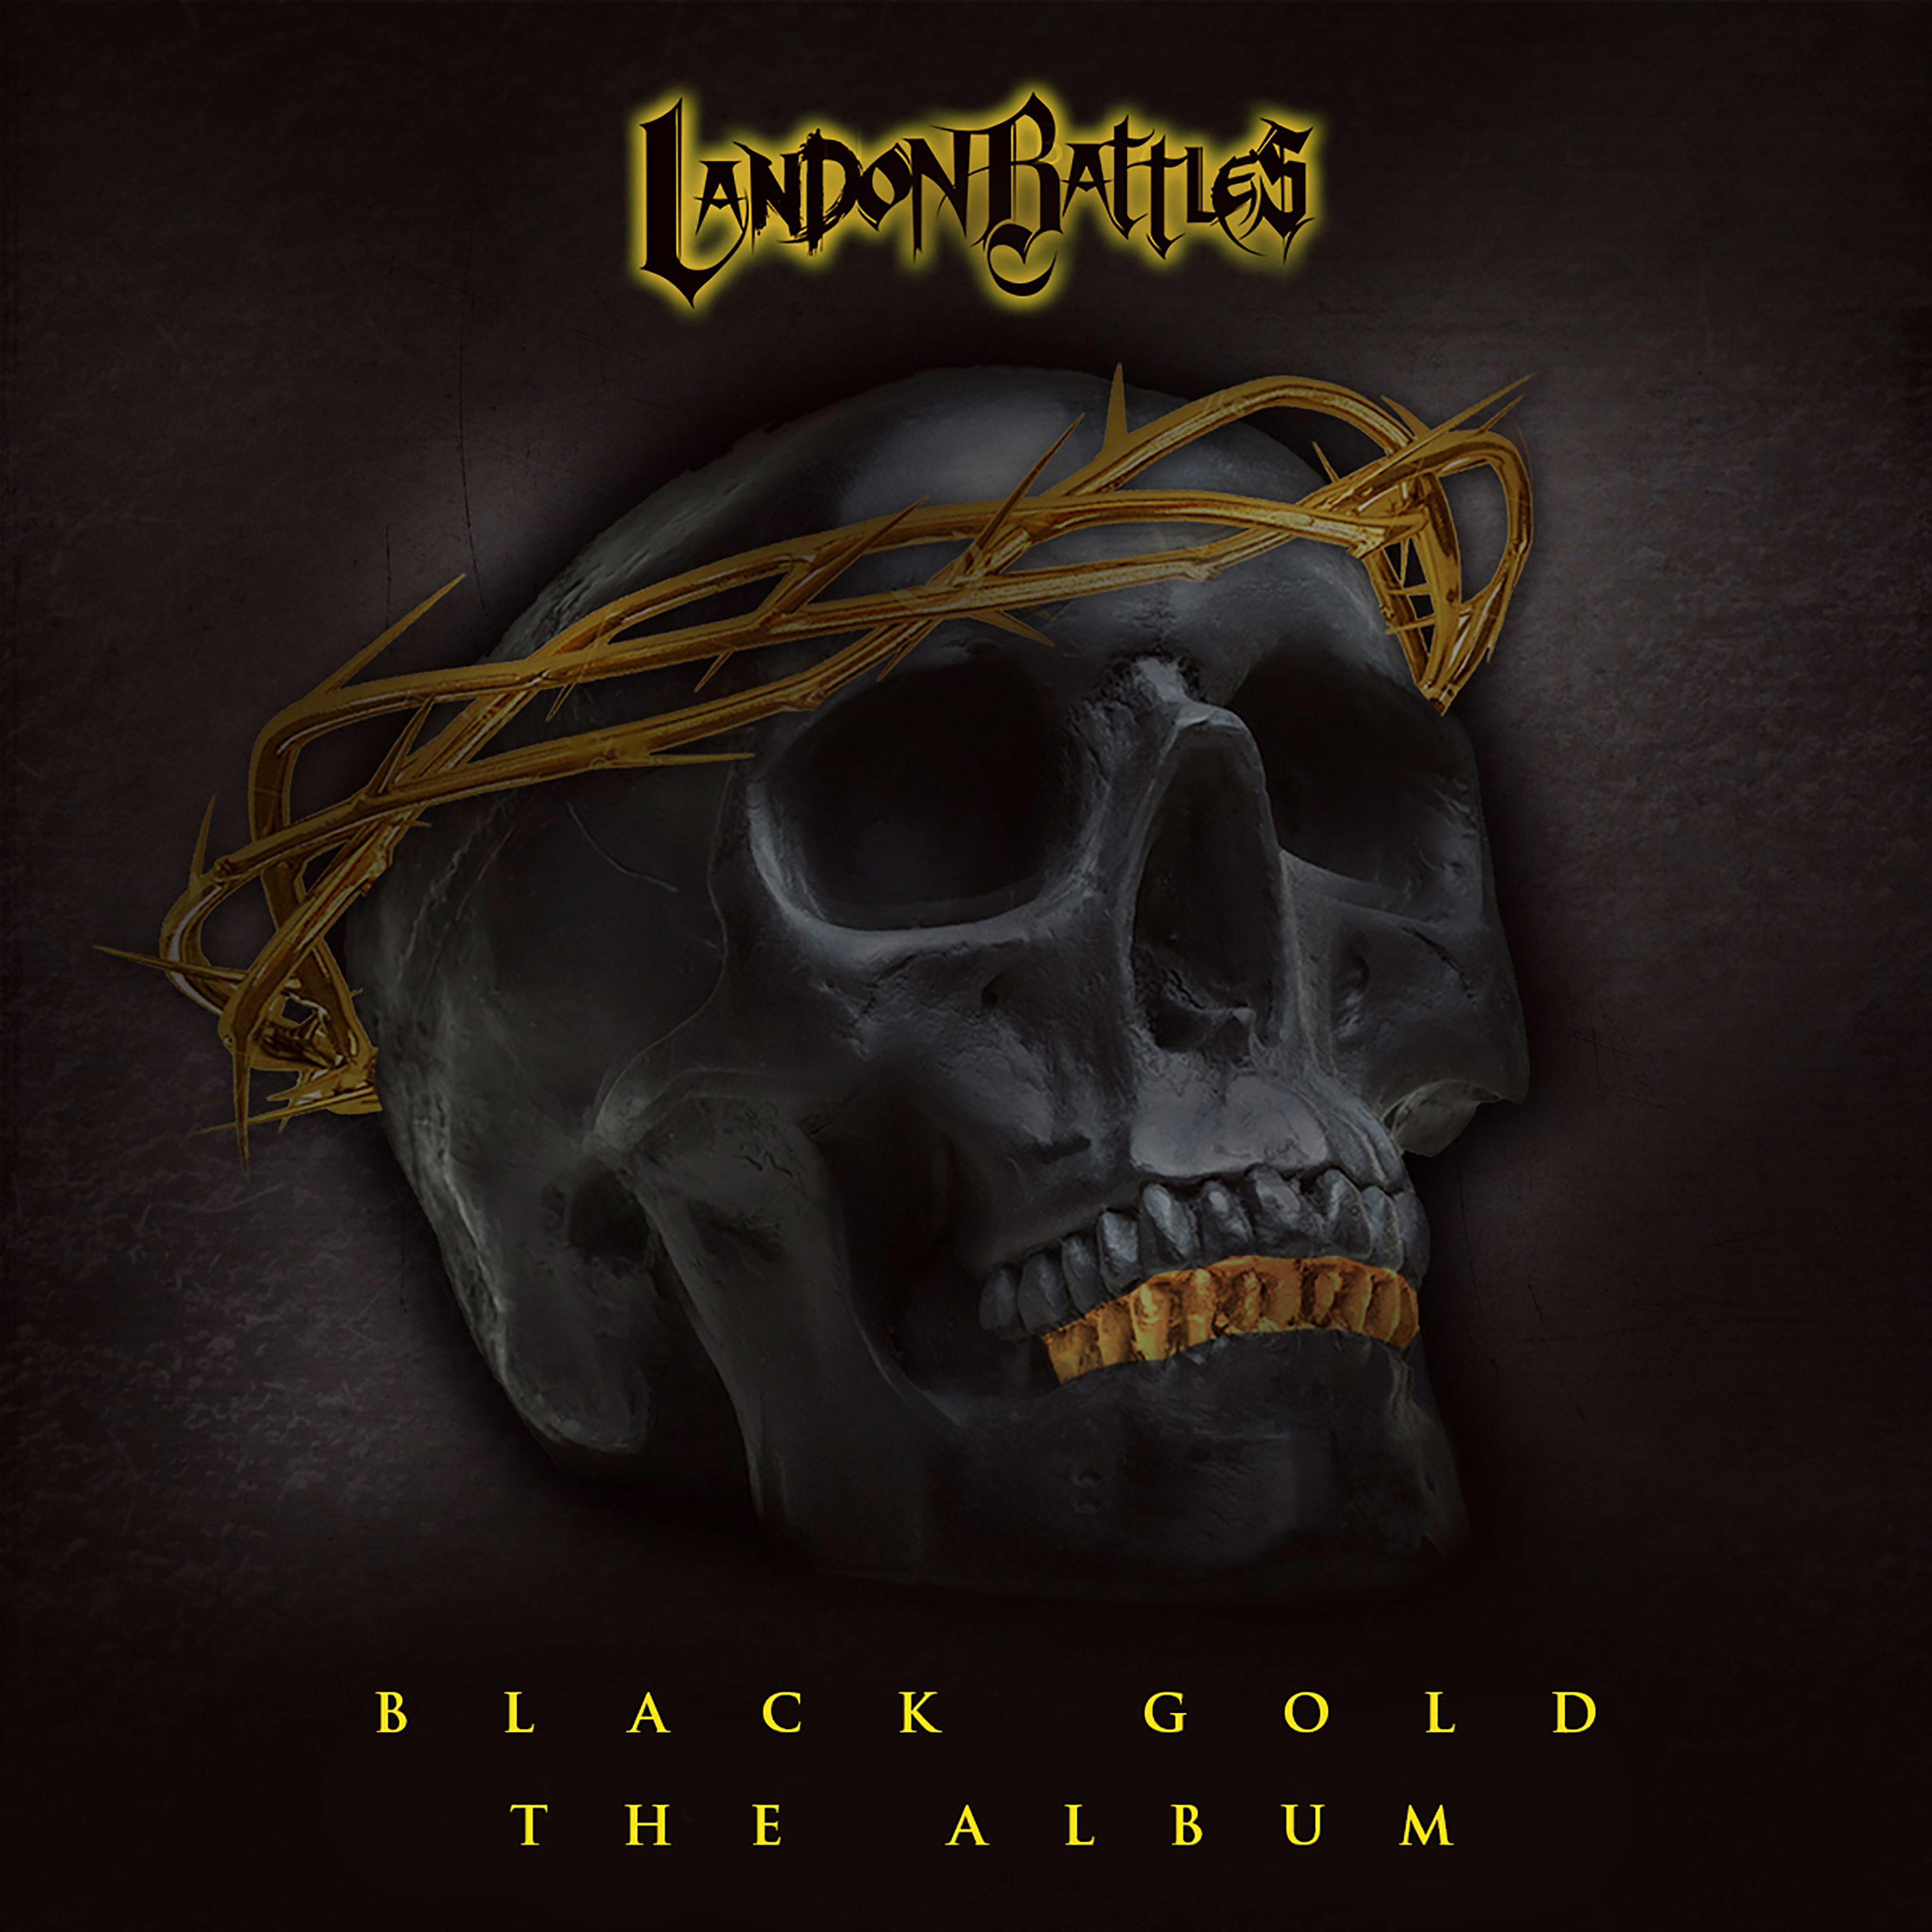 http://landonbattles.com/wp-content/uploads/2017/05/black-gold_the-album-2.jpg